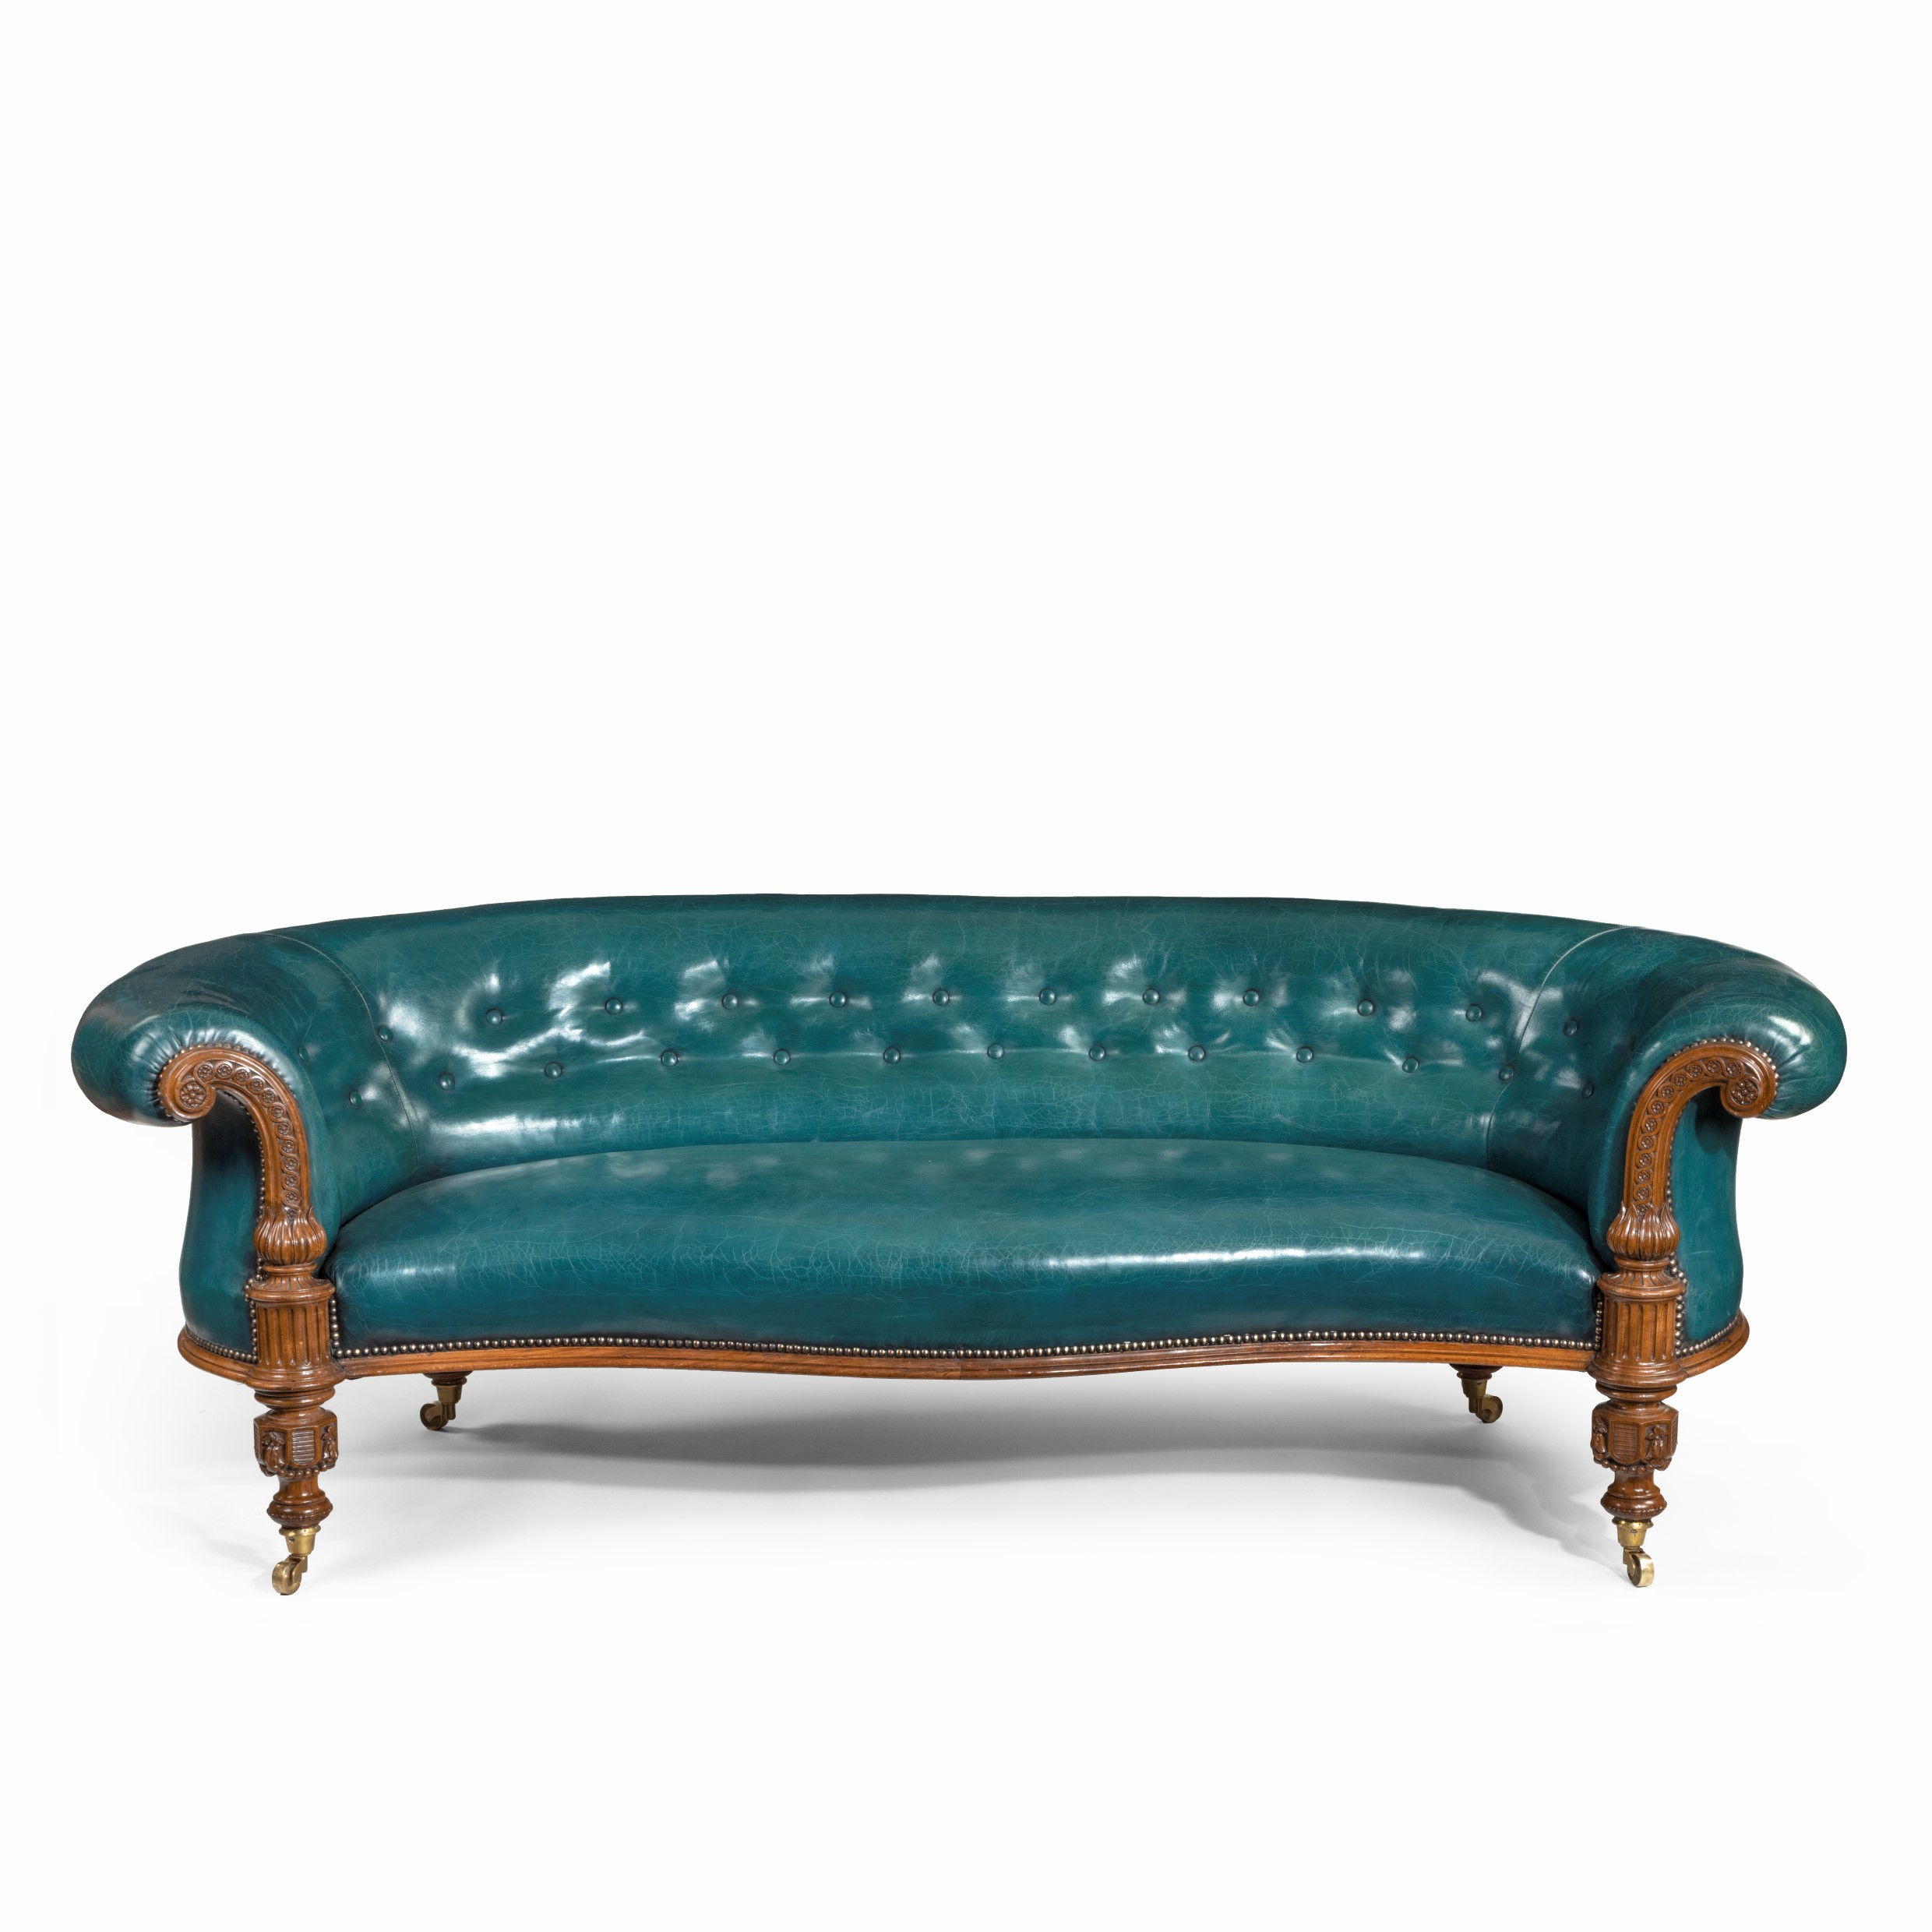 A Victorian carved walnut leathered sofa